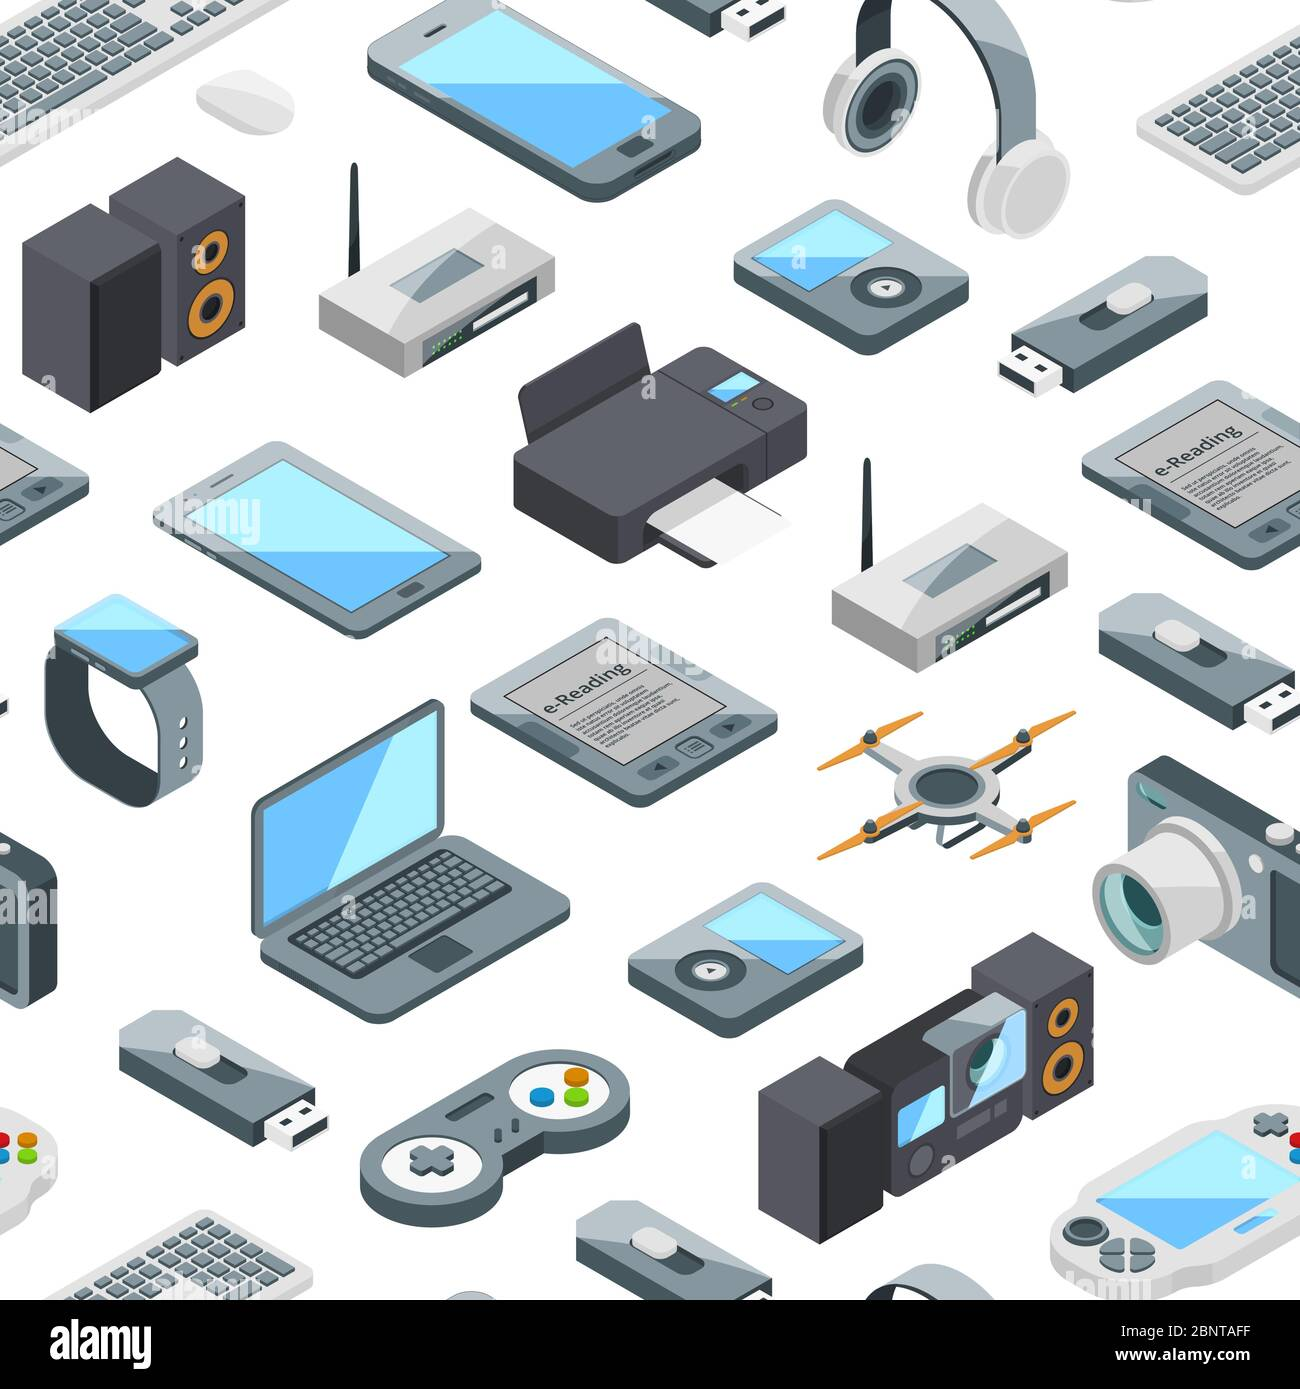 Vector isometric gadgets icons pattern or background illustration Stock Vector